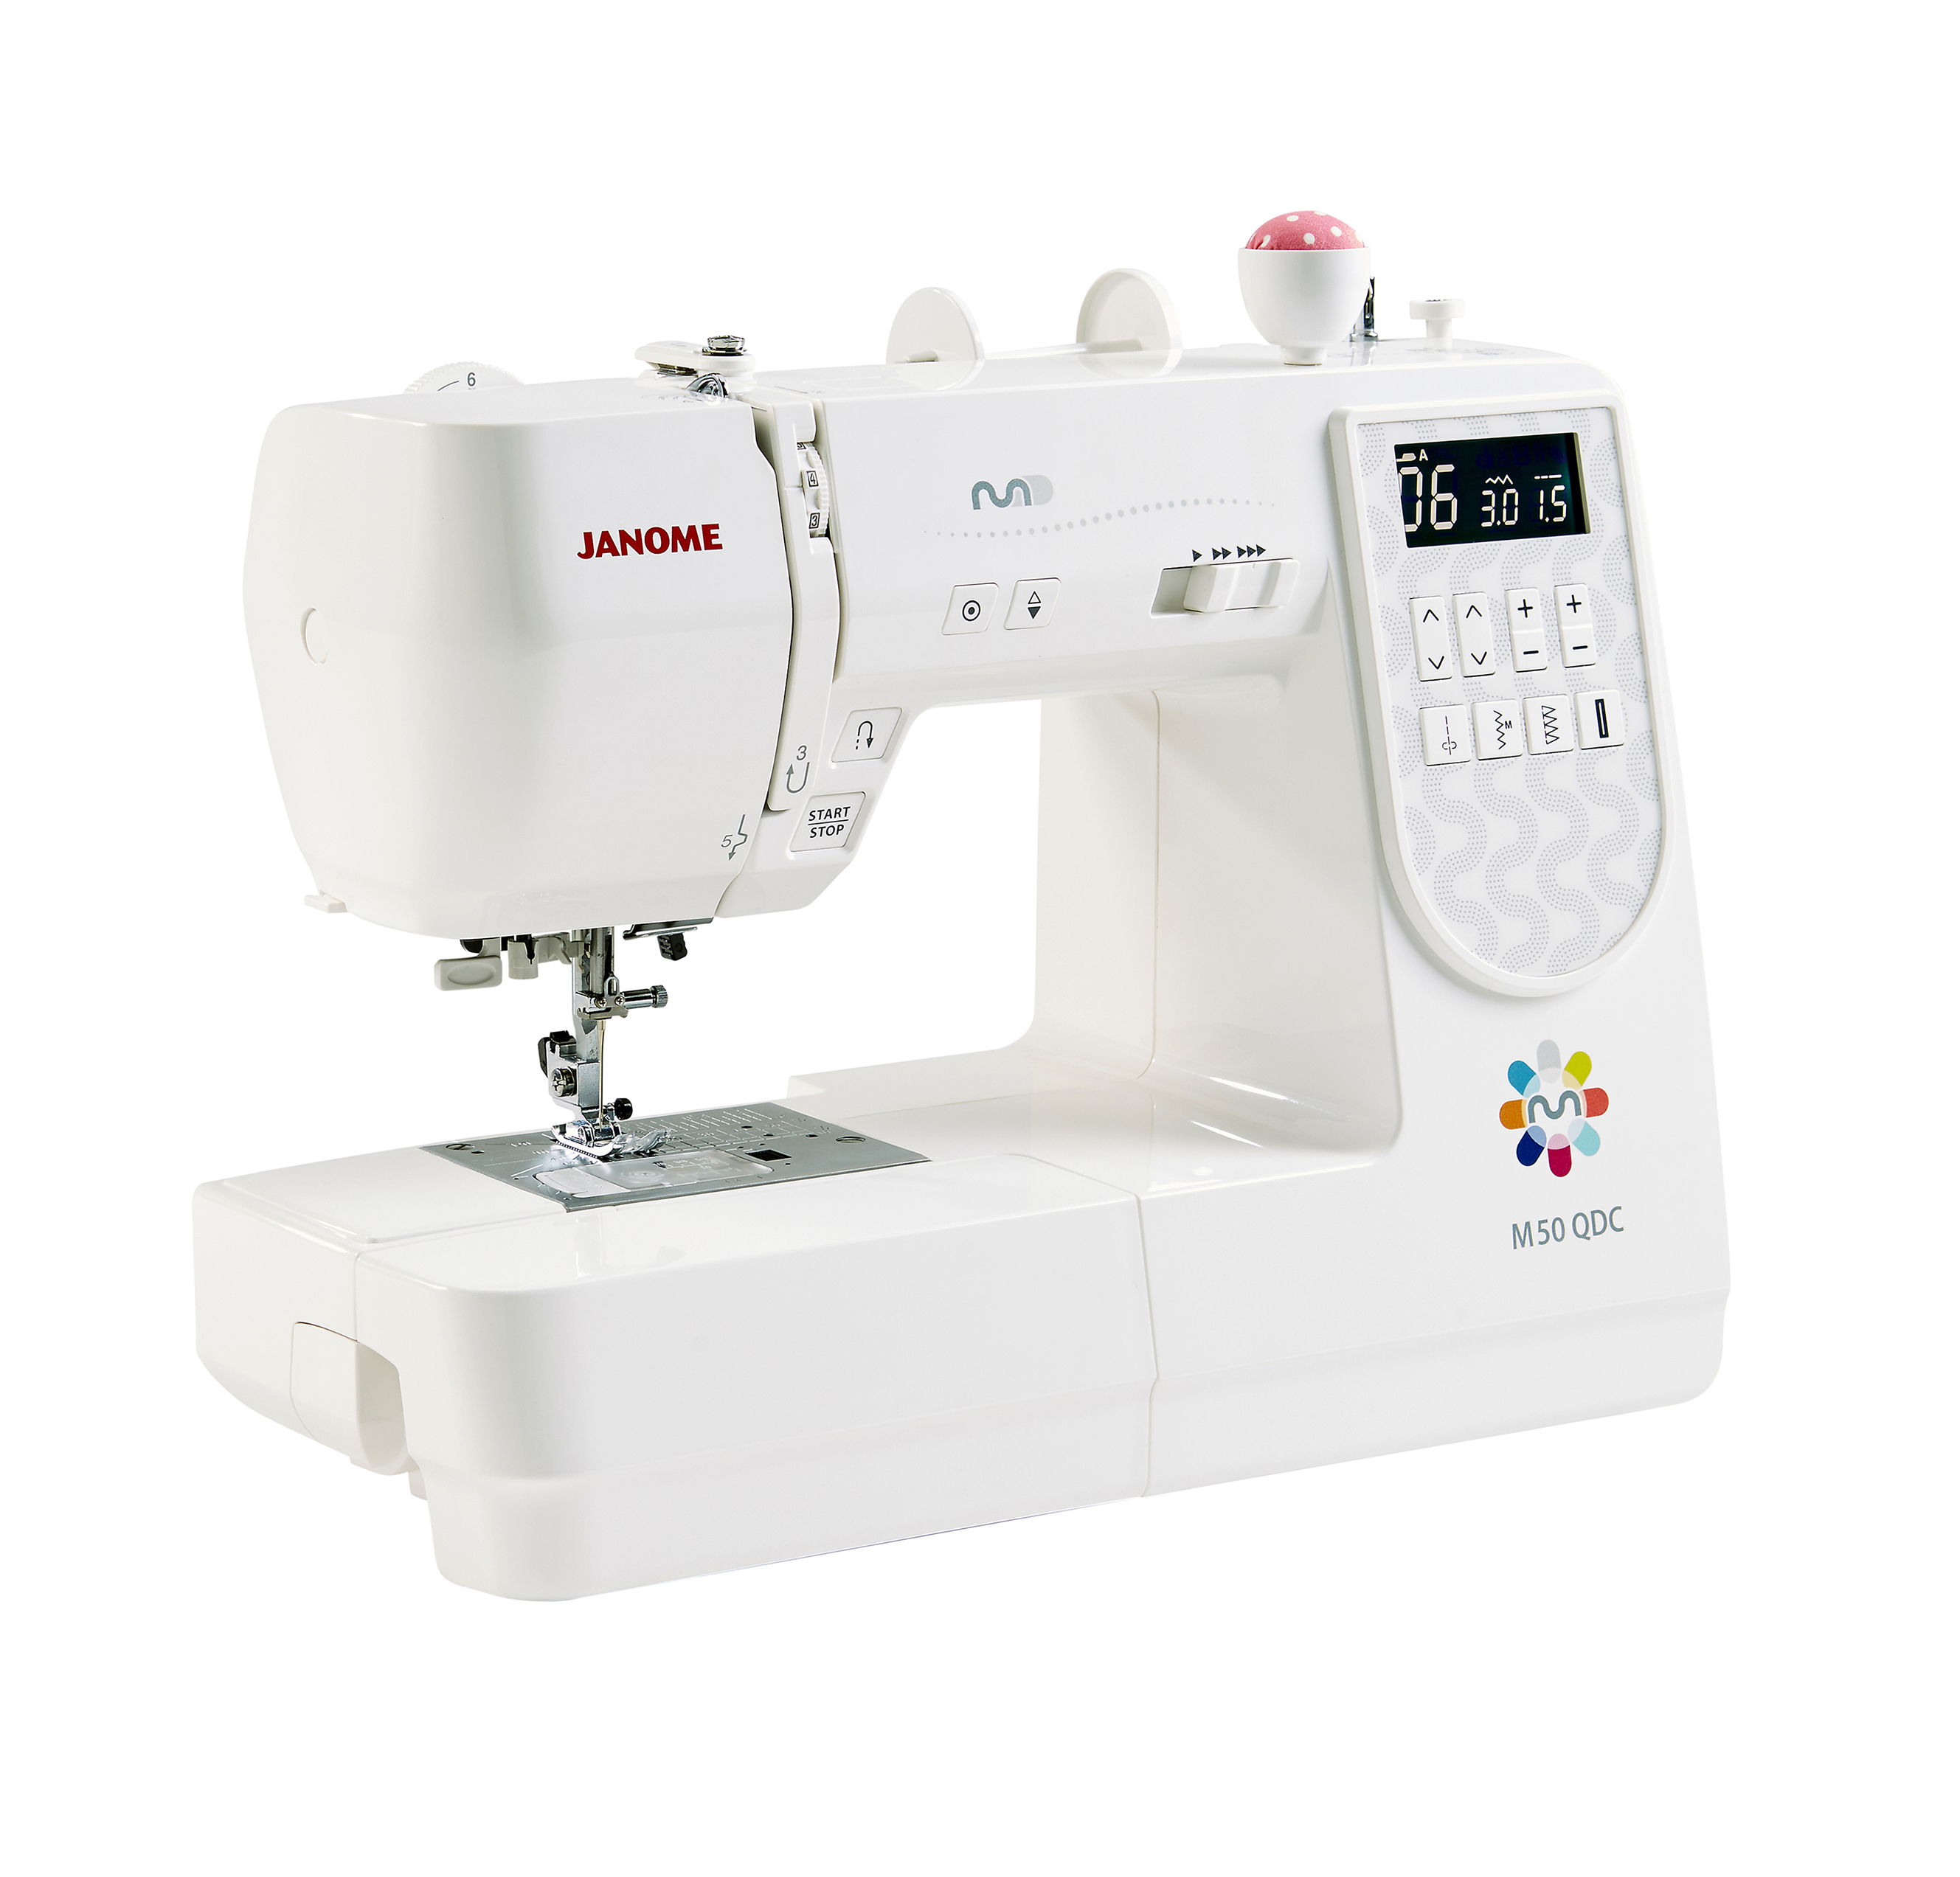 Janome M50-QDC - Franklins Group